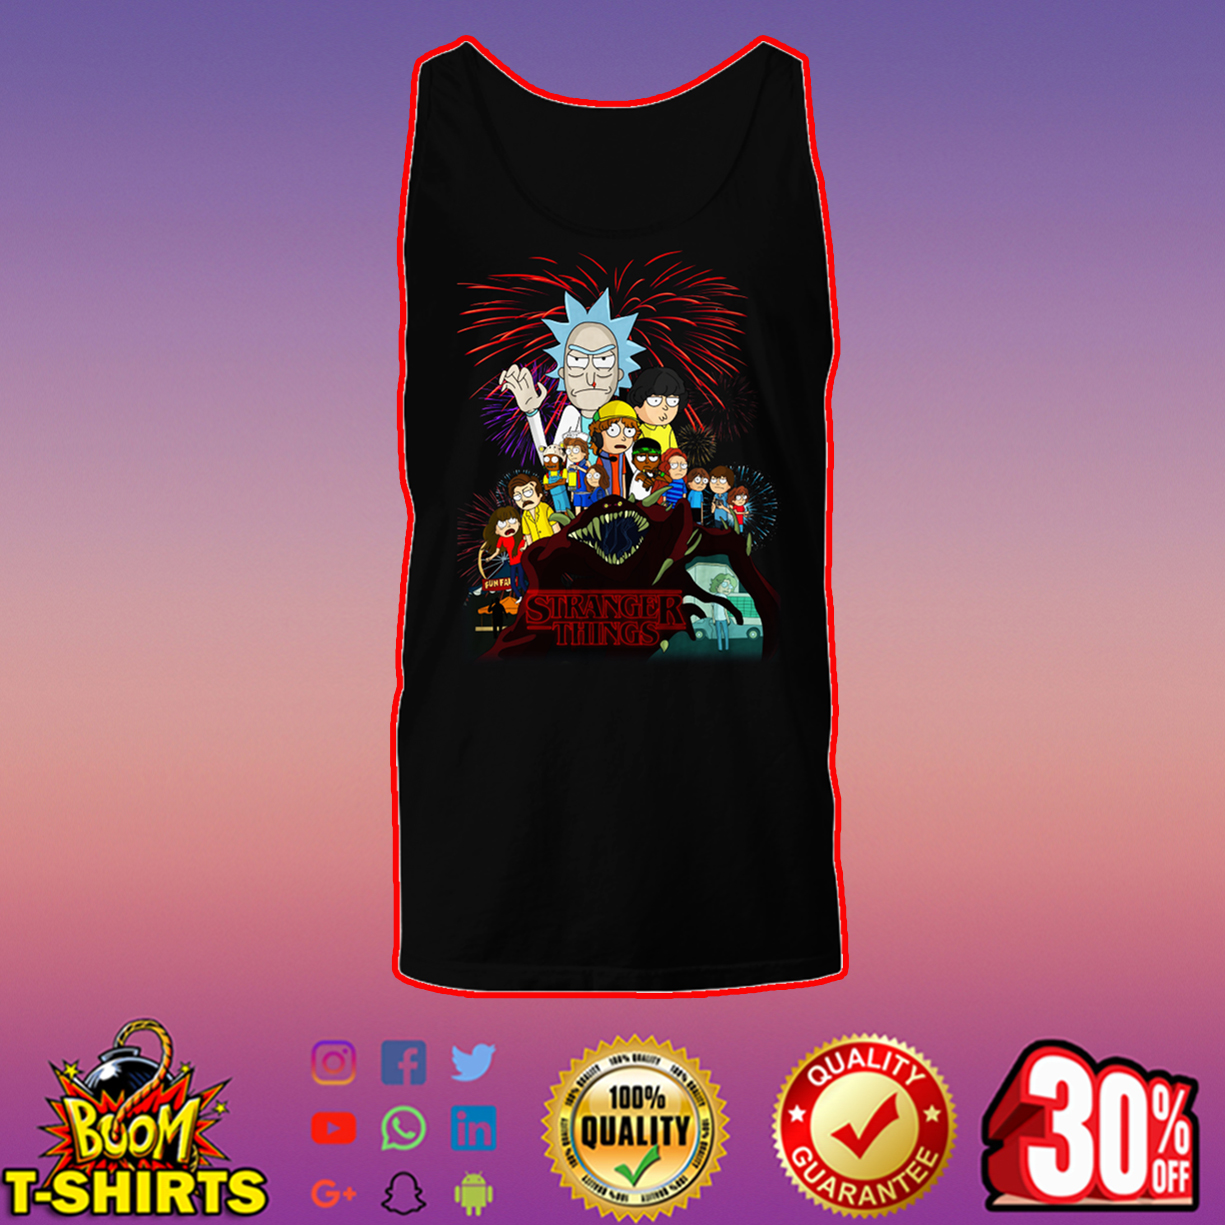 Rick and Morty x Stranger Things tank top